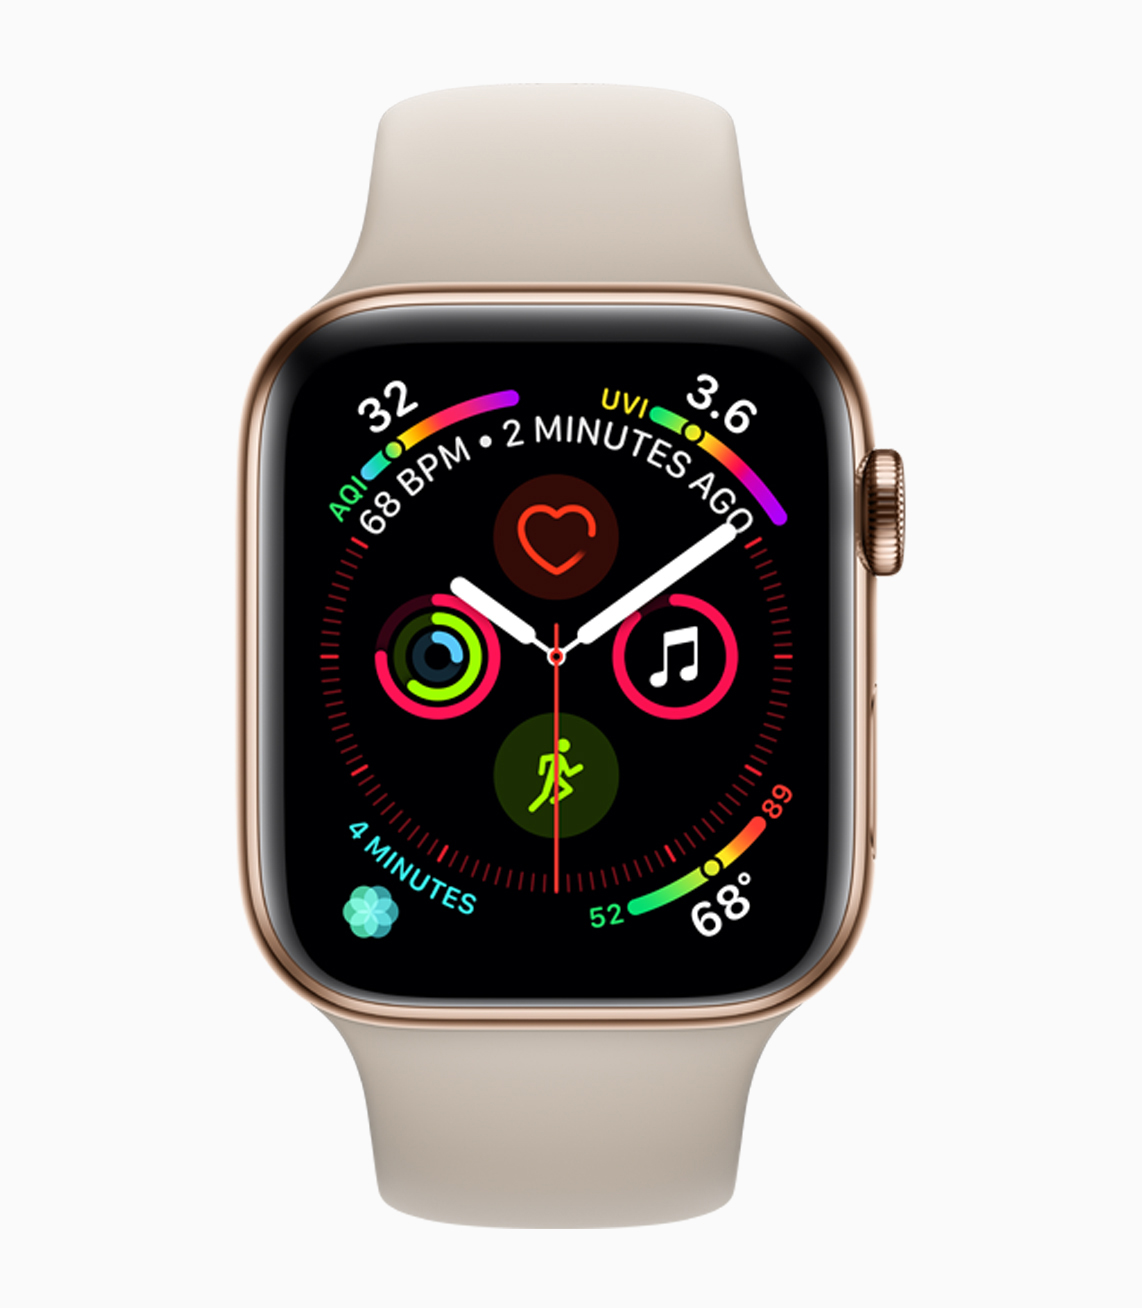 https://www.apple.com/newsroom/images/product/watch/standard/apple-watch-series4_liquidmetal-face_09122018_carousel.jpg.large_2x.jpg